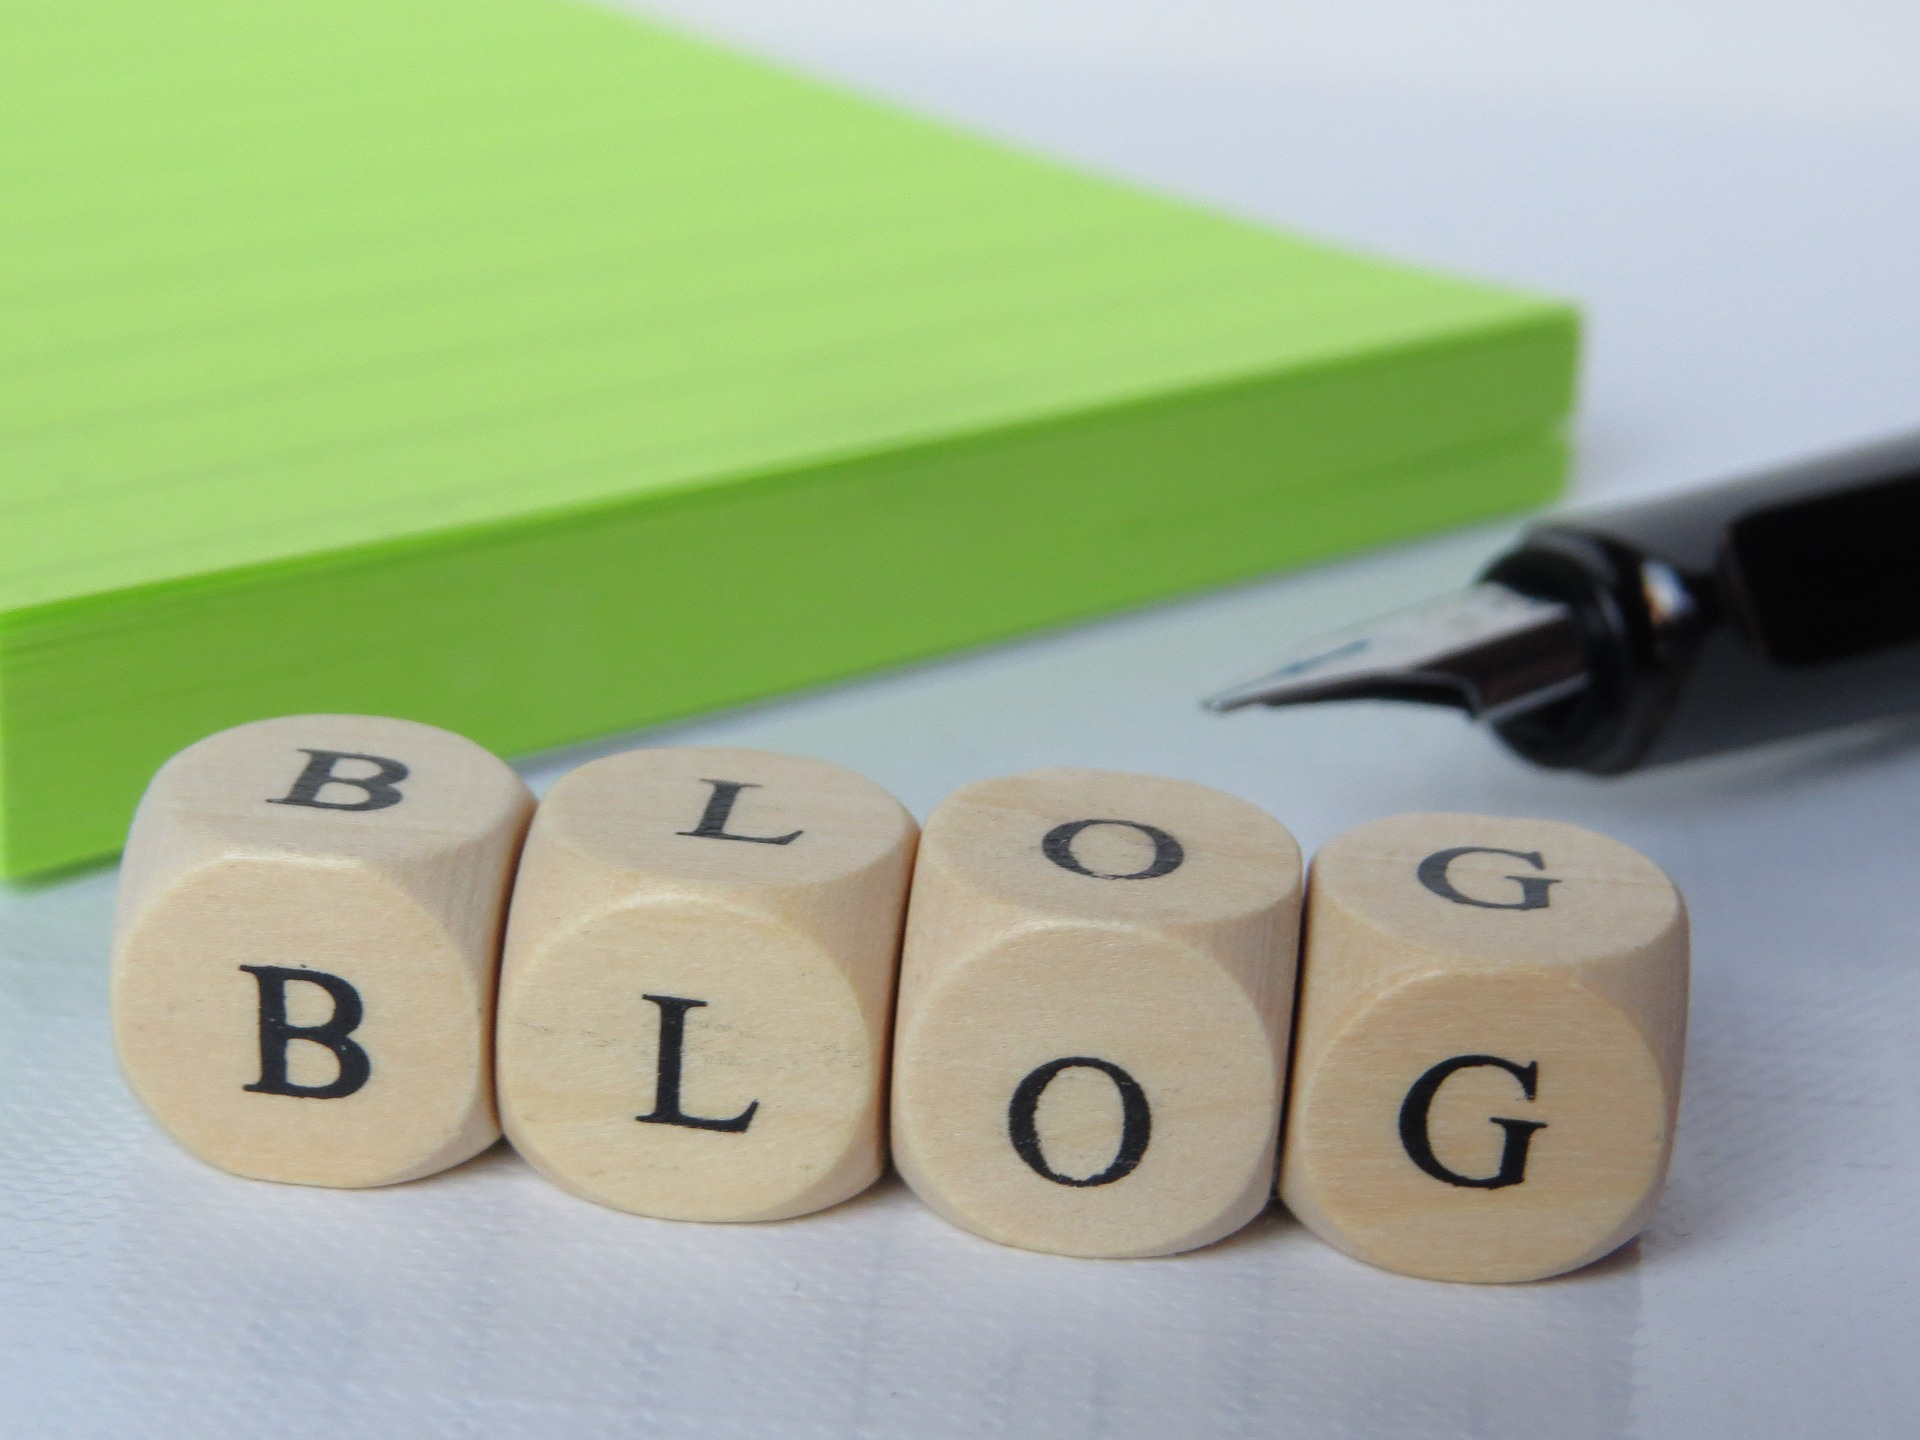 Should My Business Have A Blog?